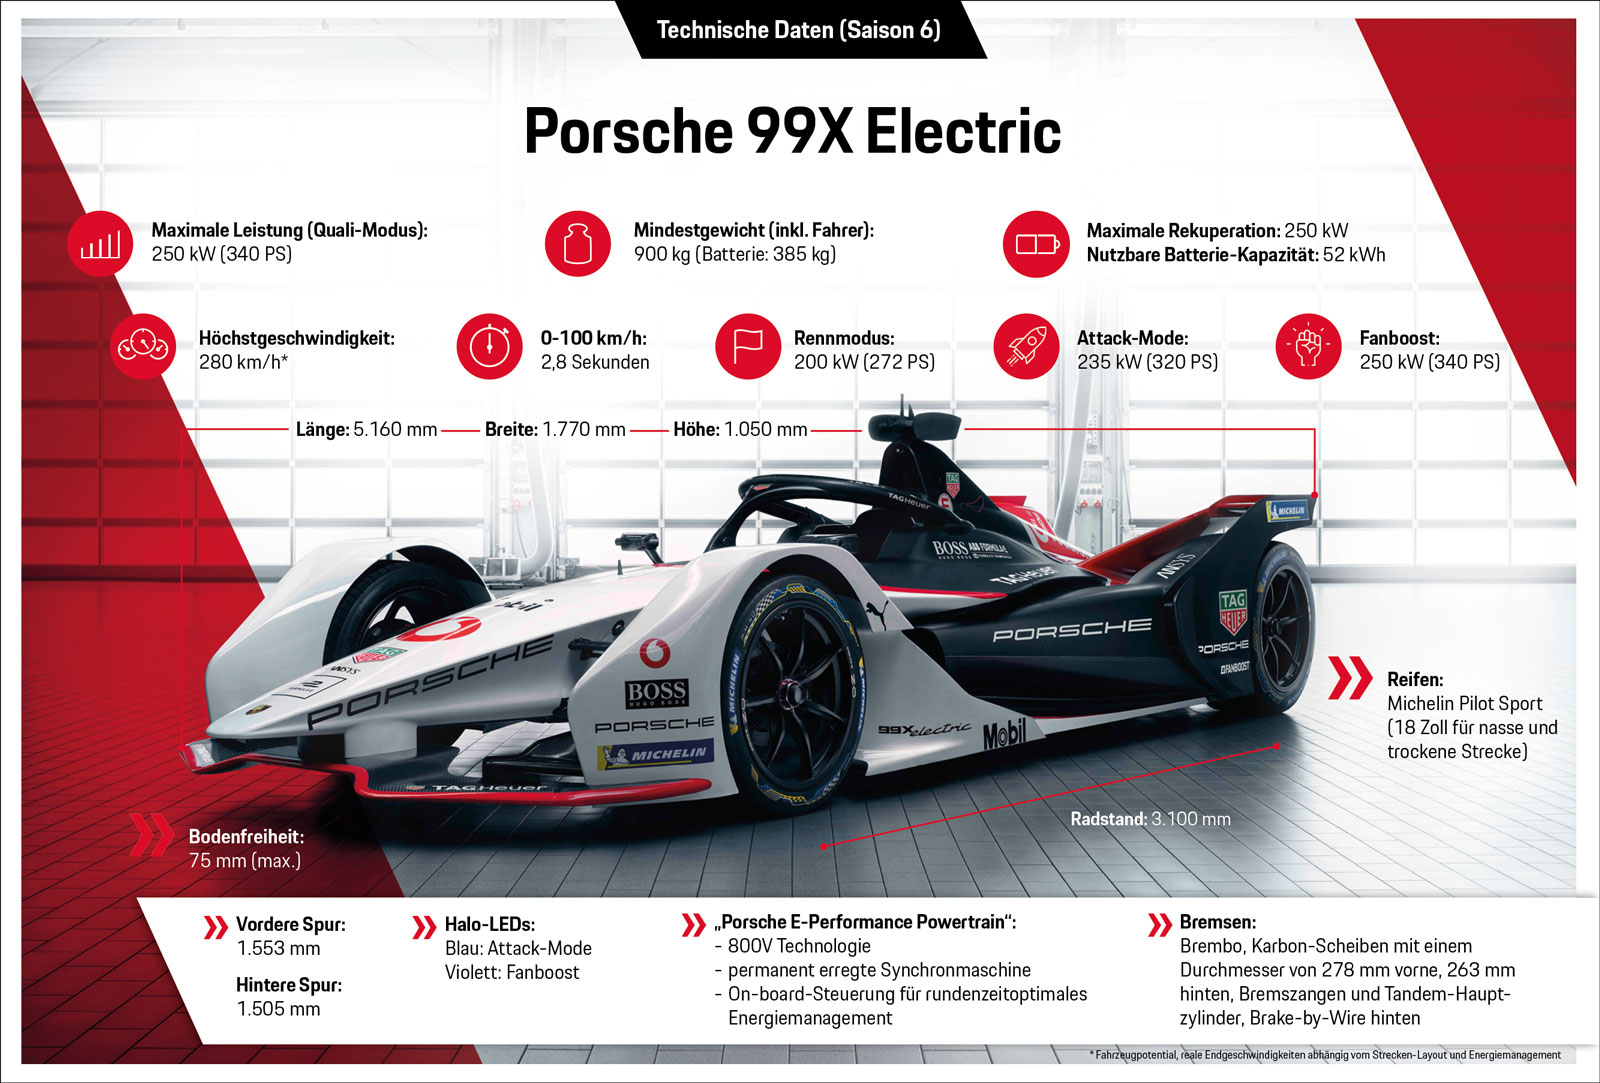 Porsche-99X-Electric-Technik